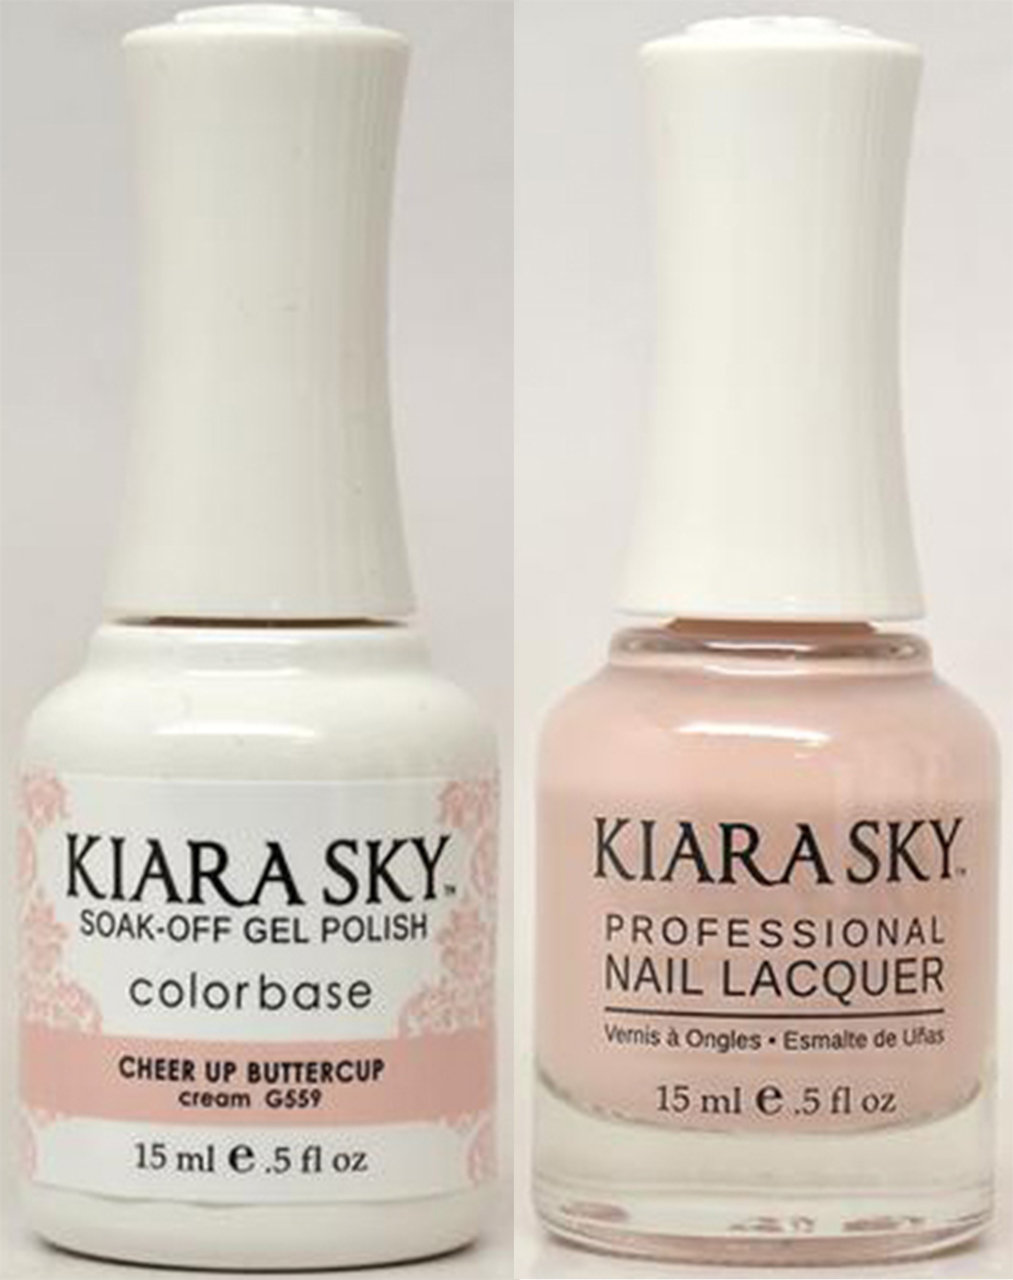 Kiara Sky Gel + Lacquer, CHEER UP BUTTERCUP G559